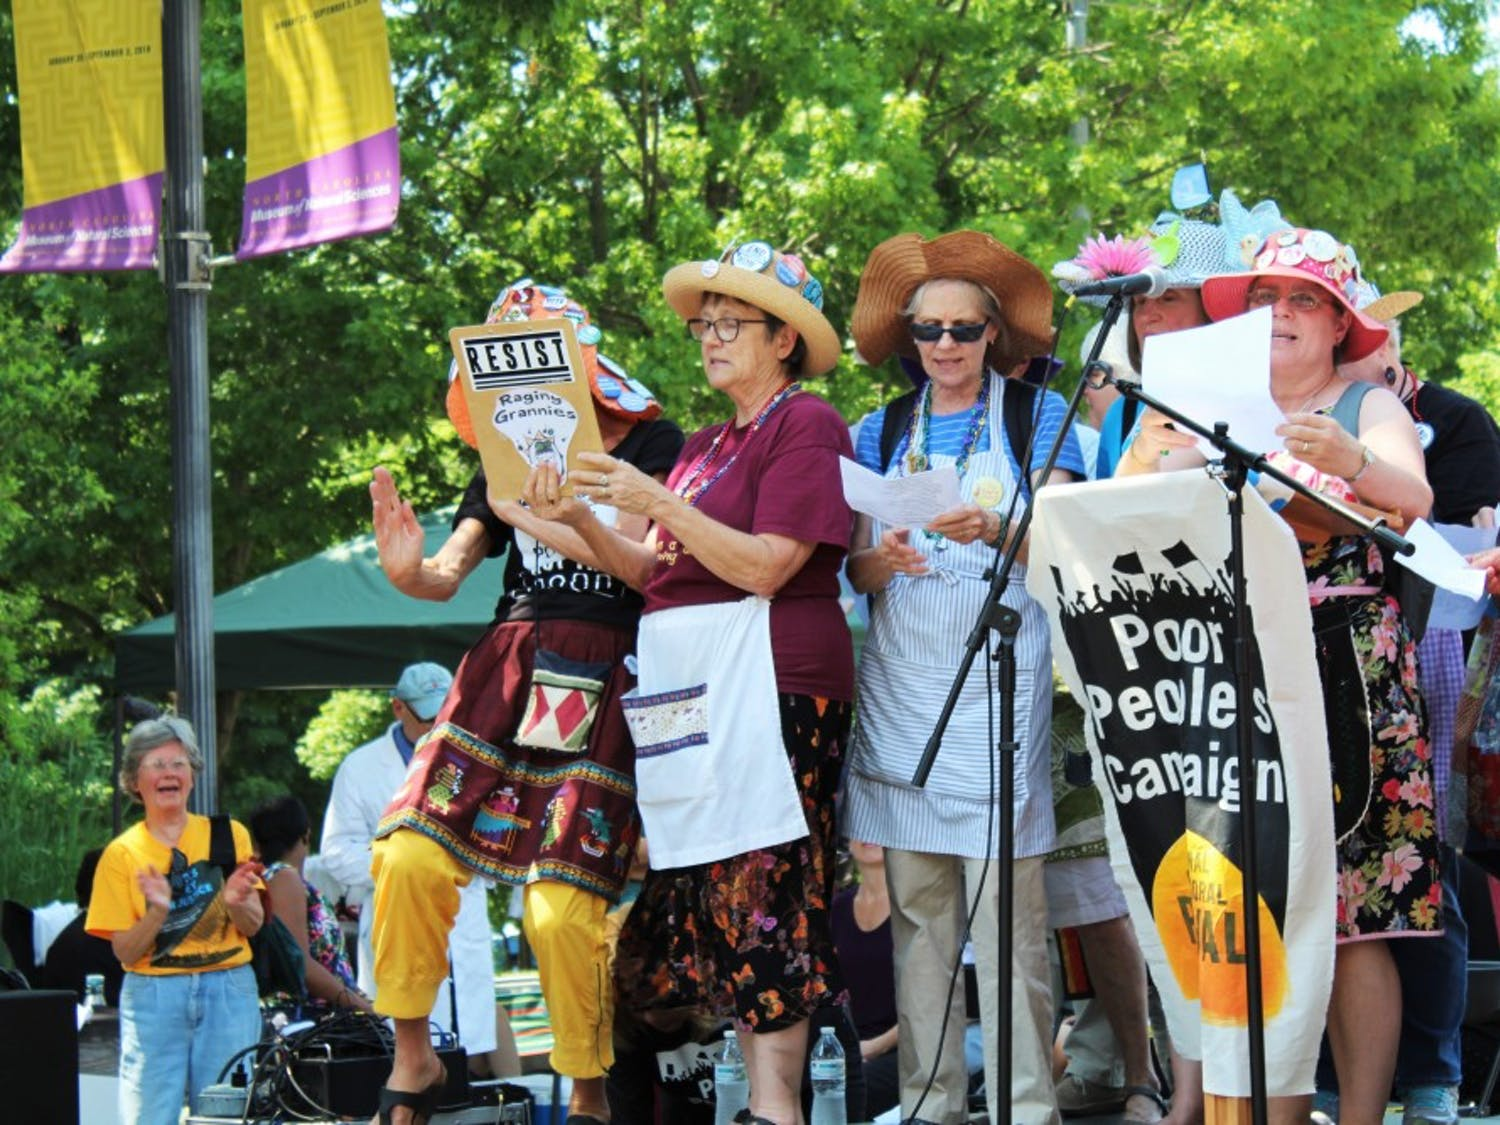 The Raging Grannies take the stage on May 14 during a rally with the North Carolina Poor People's Campaign.